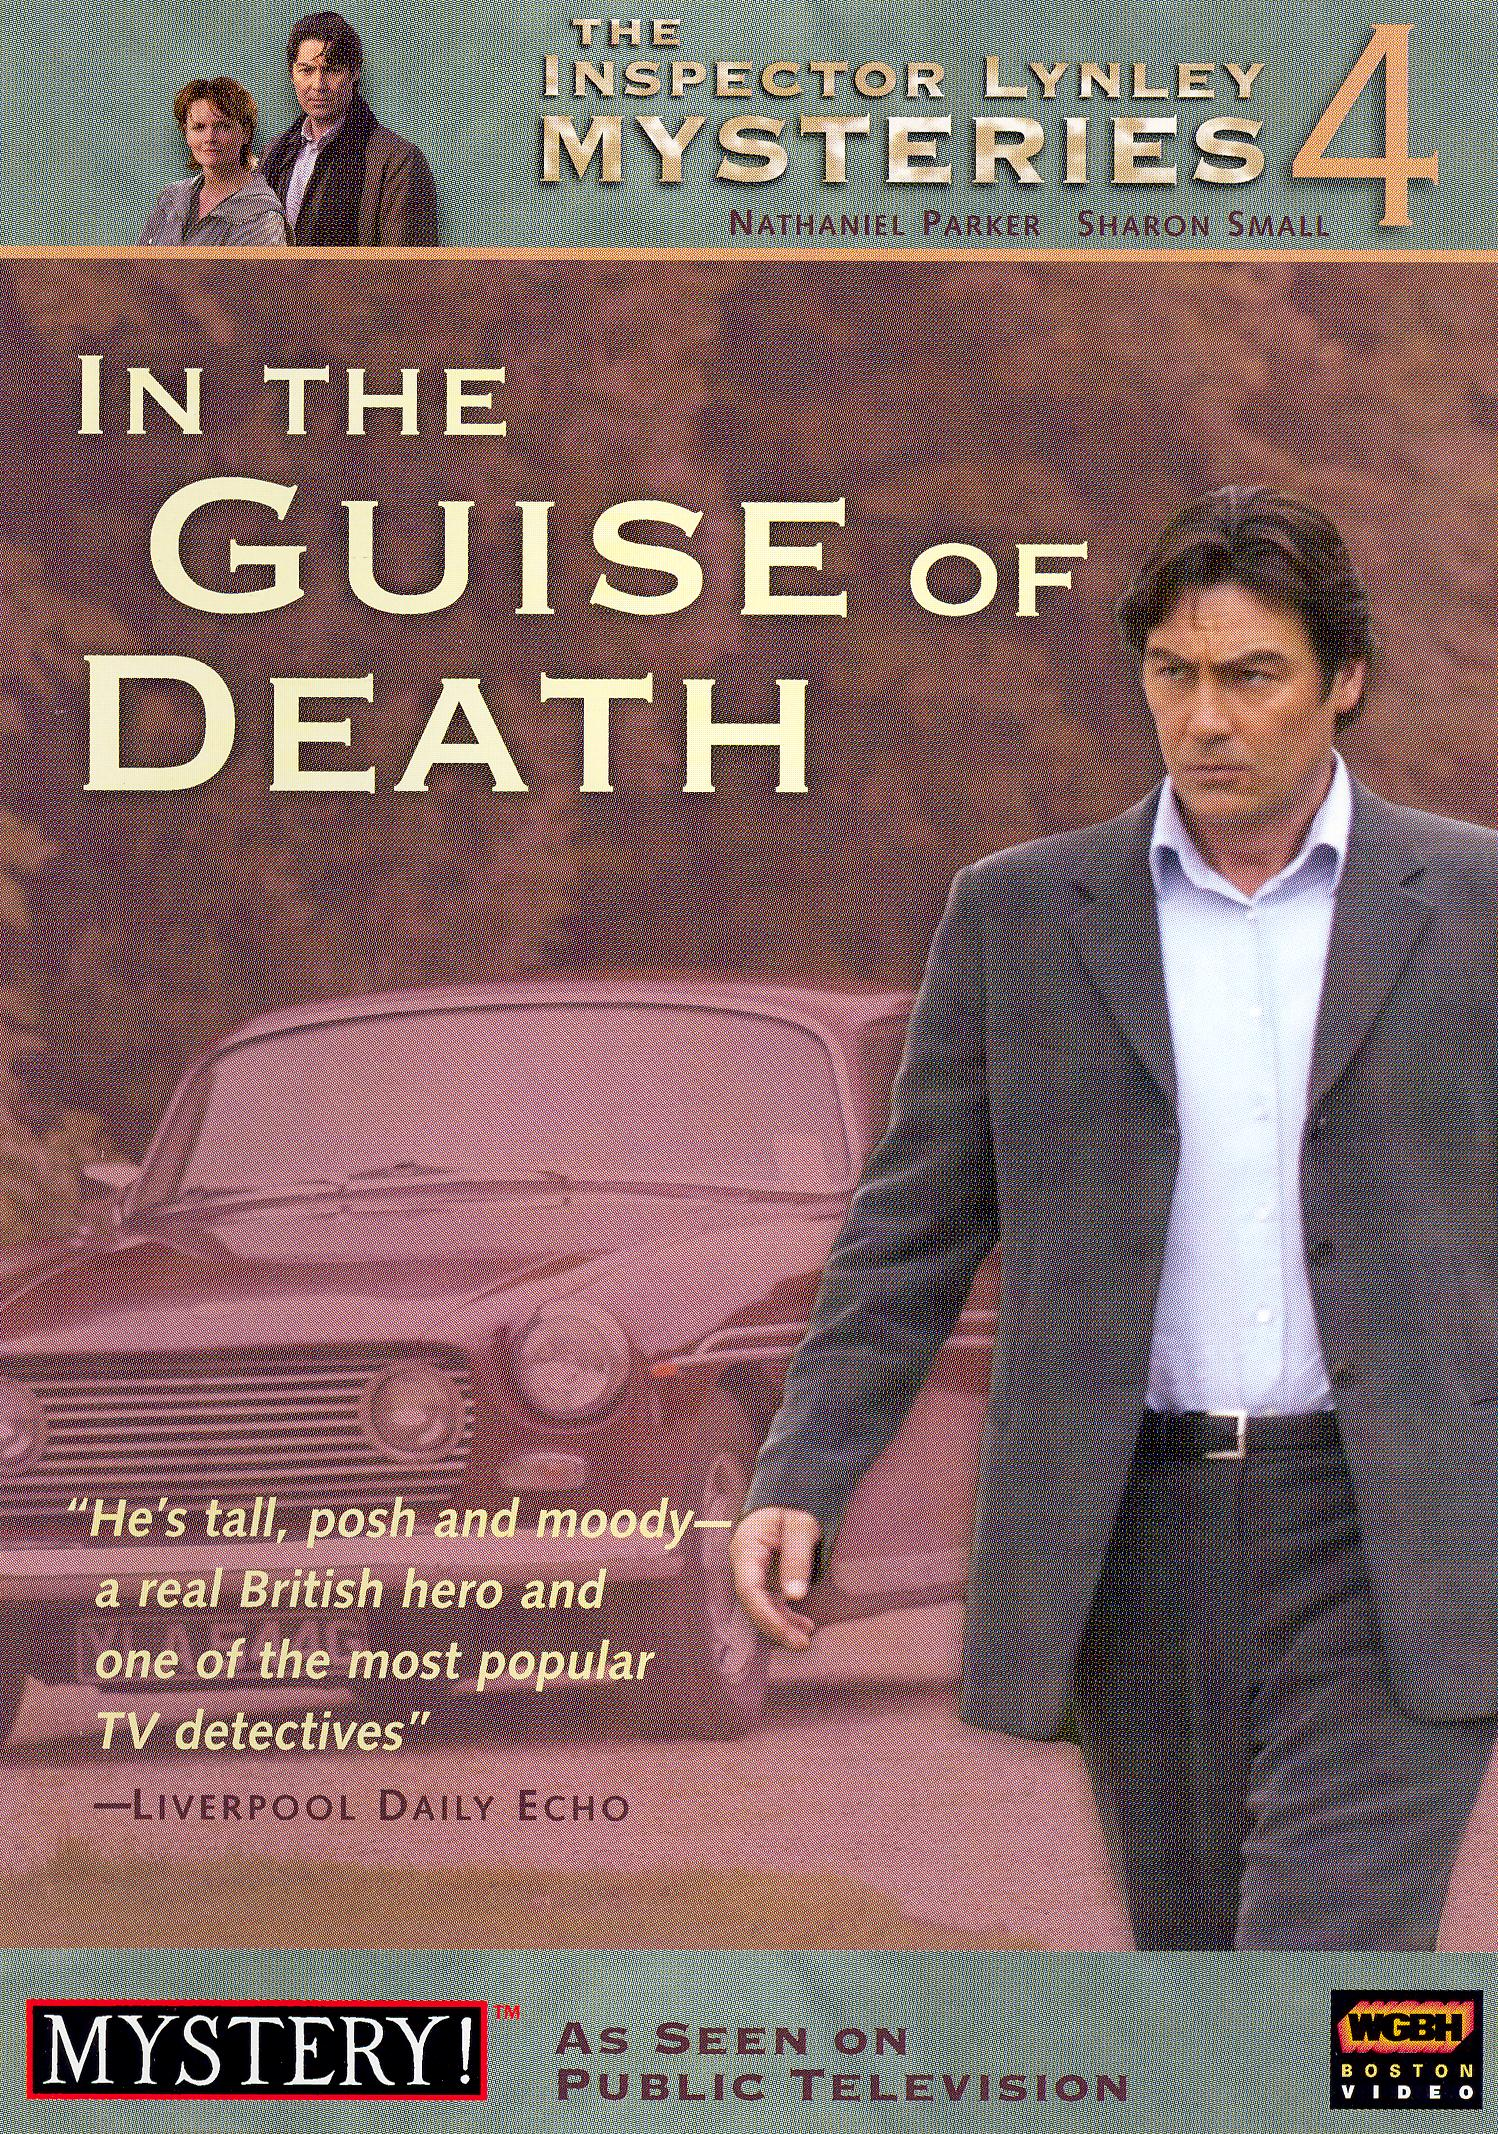 The Inspector Lynley Mysteries: In the Guise of Death